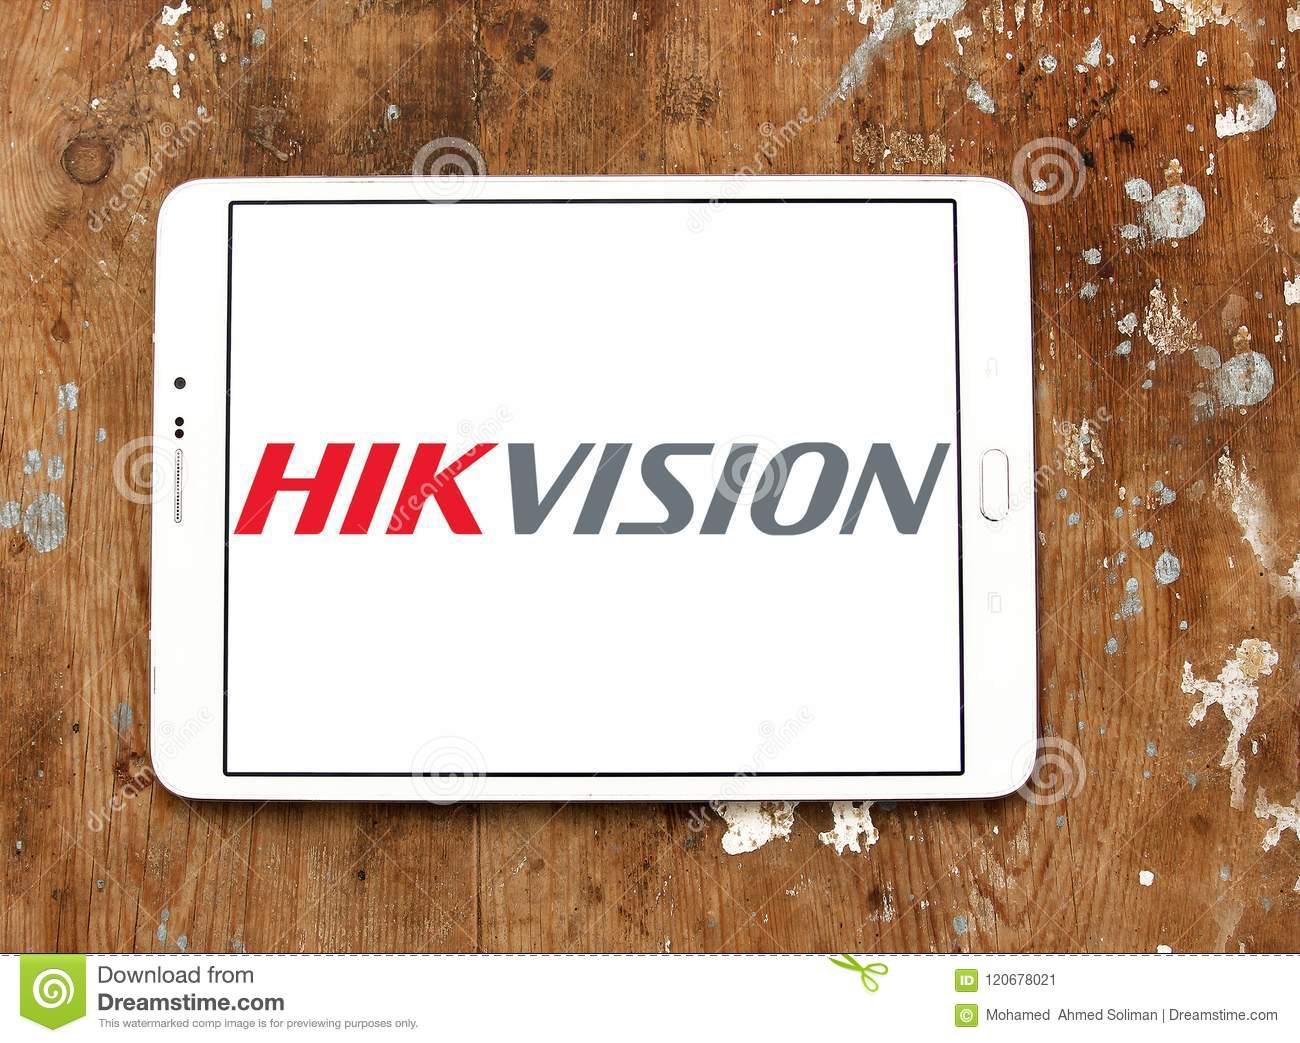 Hikvision Video Surveillance Company Logo Editorial Photo - Image of